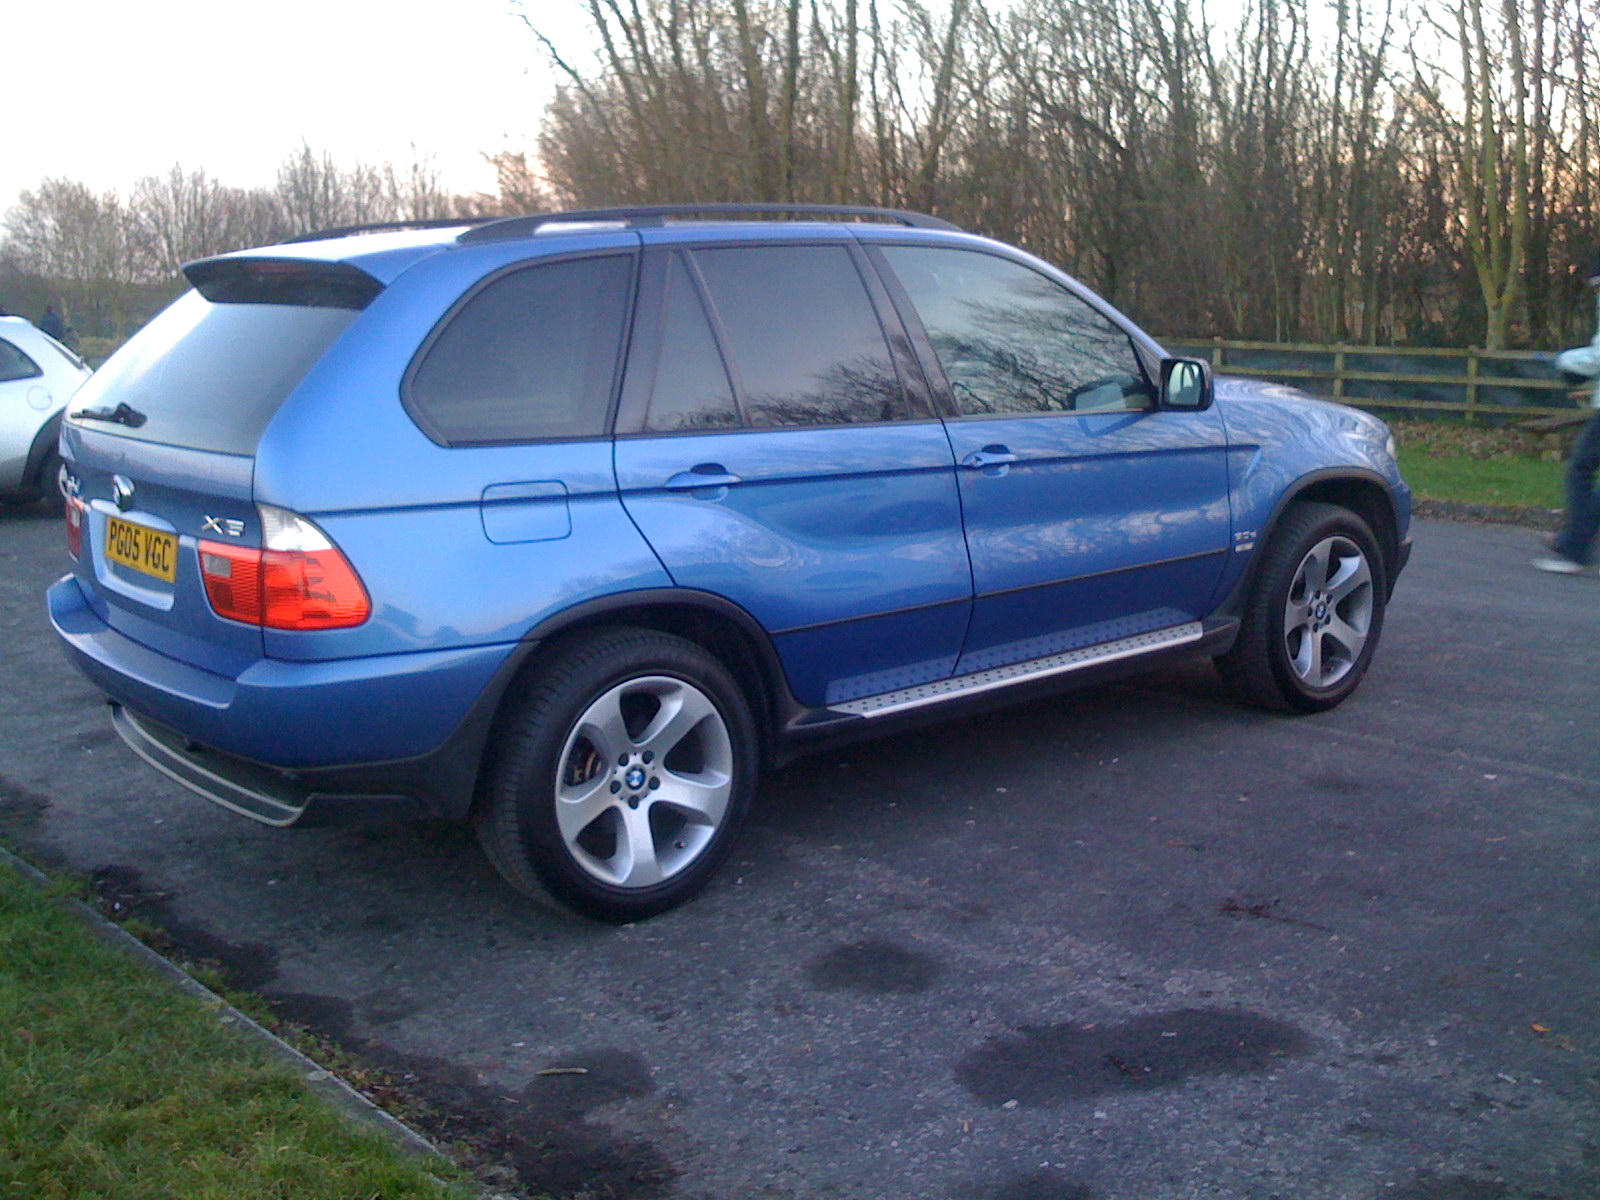 Bmw X5 2005 Review Amazing Pictures And Images Look At The Car